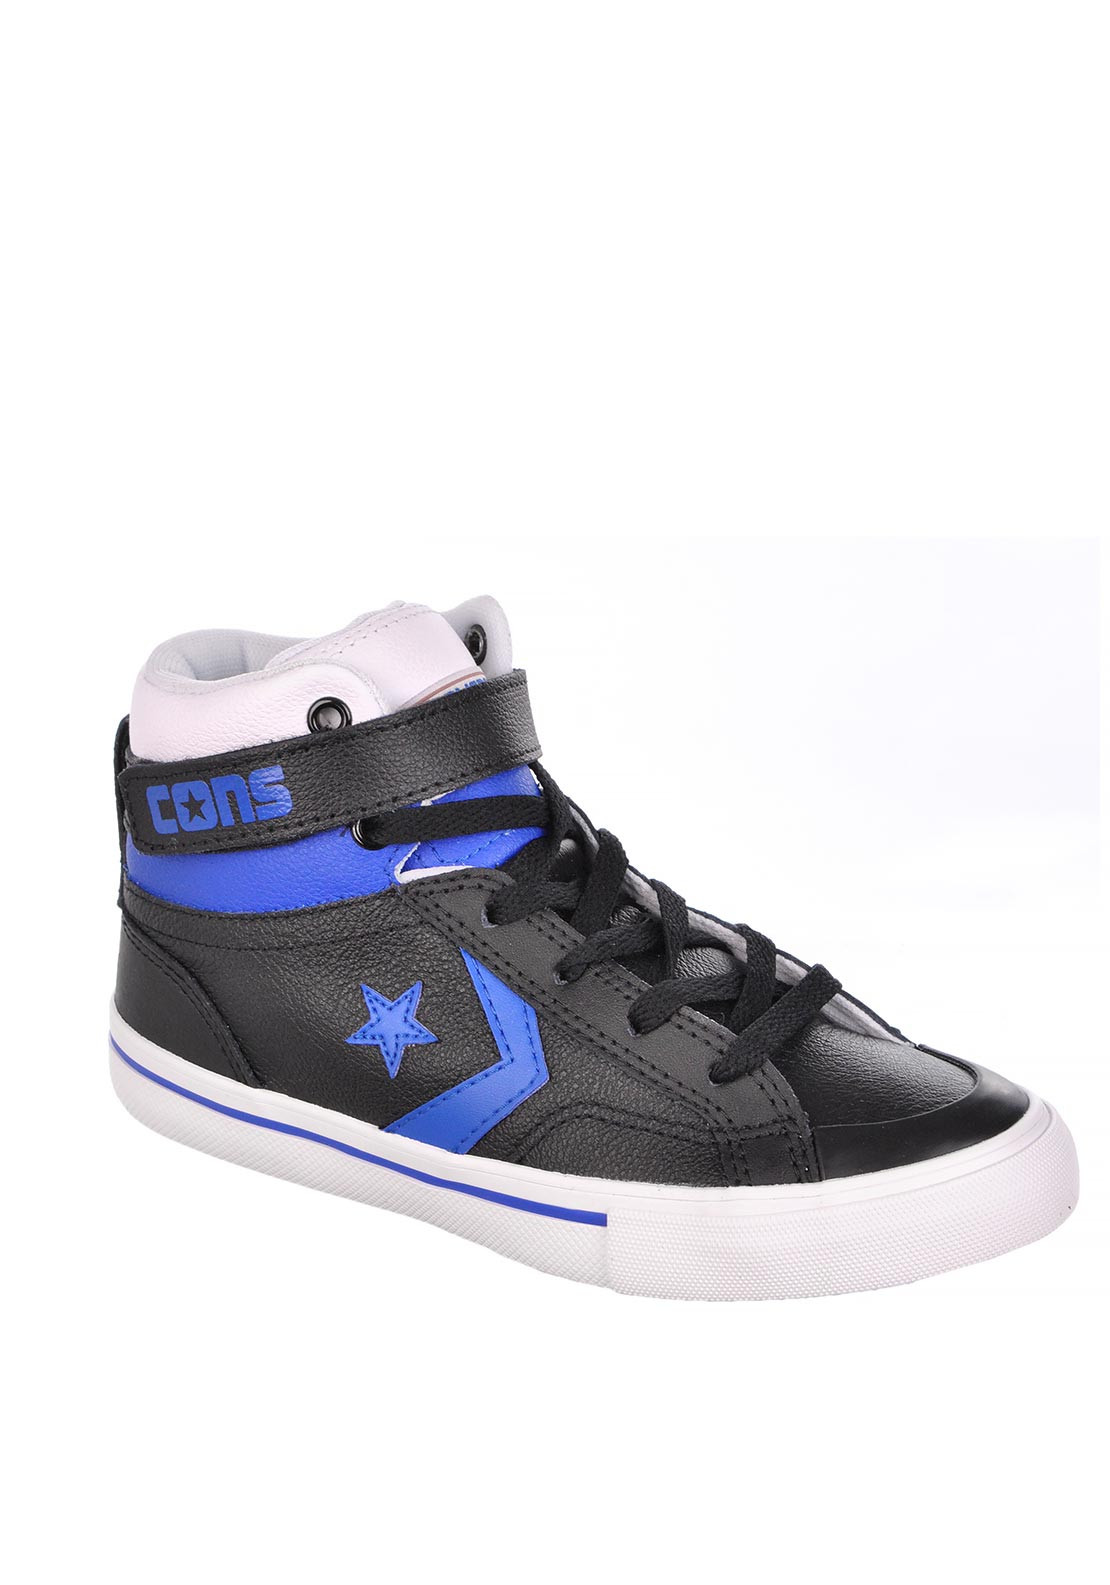 Converse Boys Leather Hi Top Trainer, Black